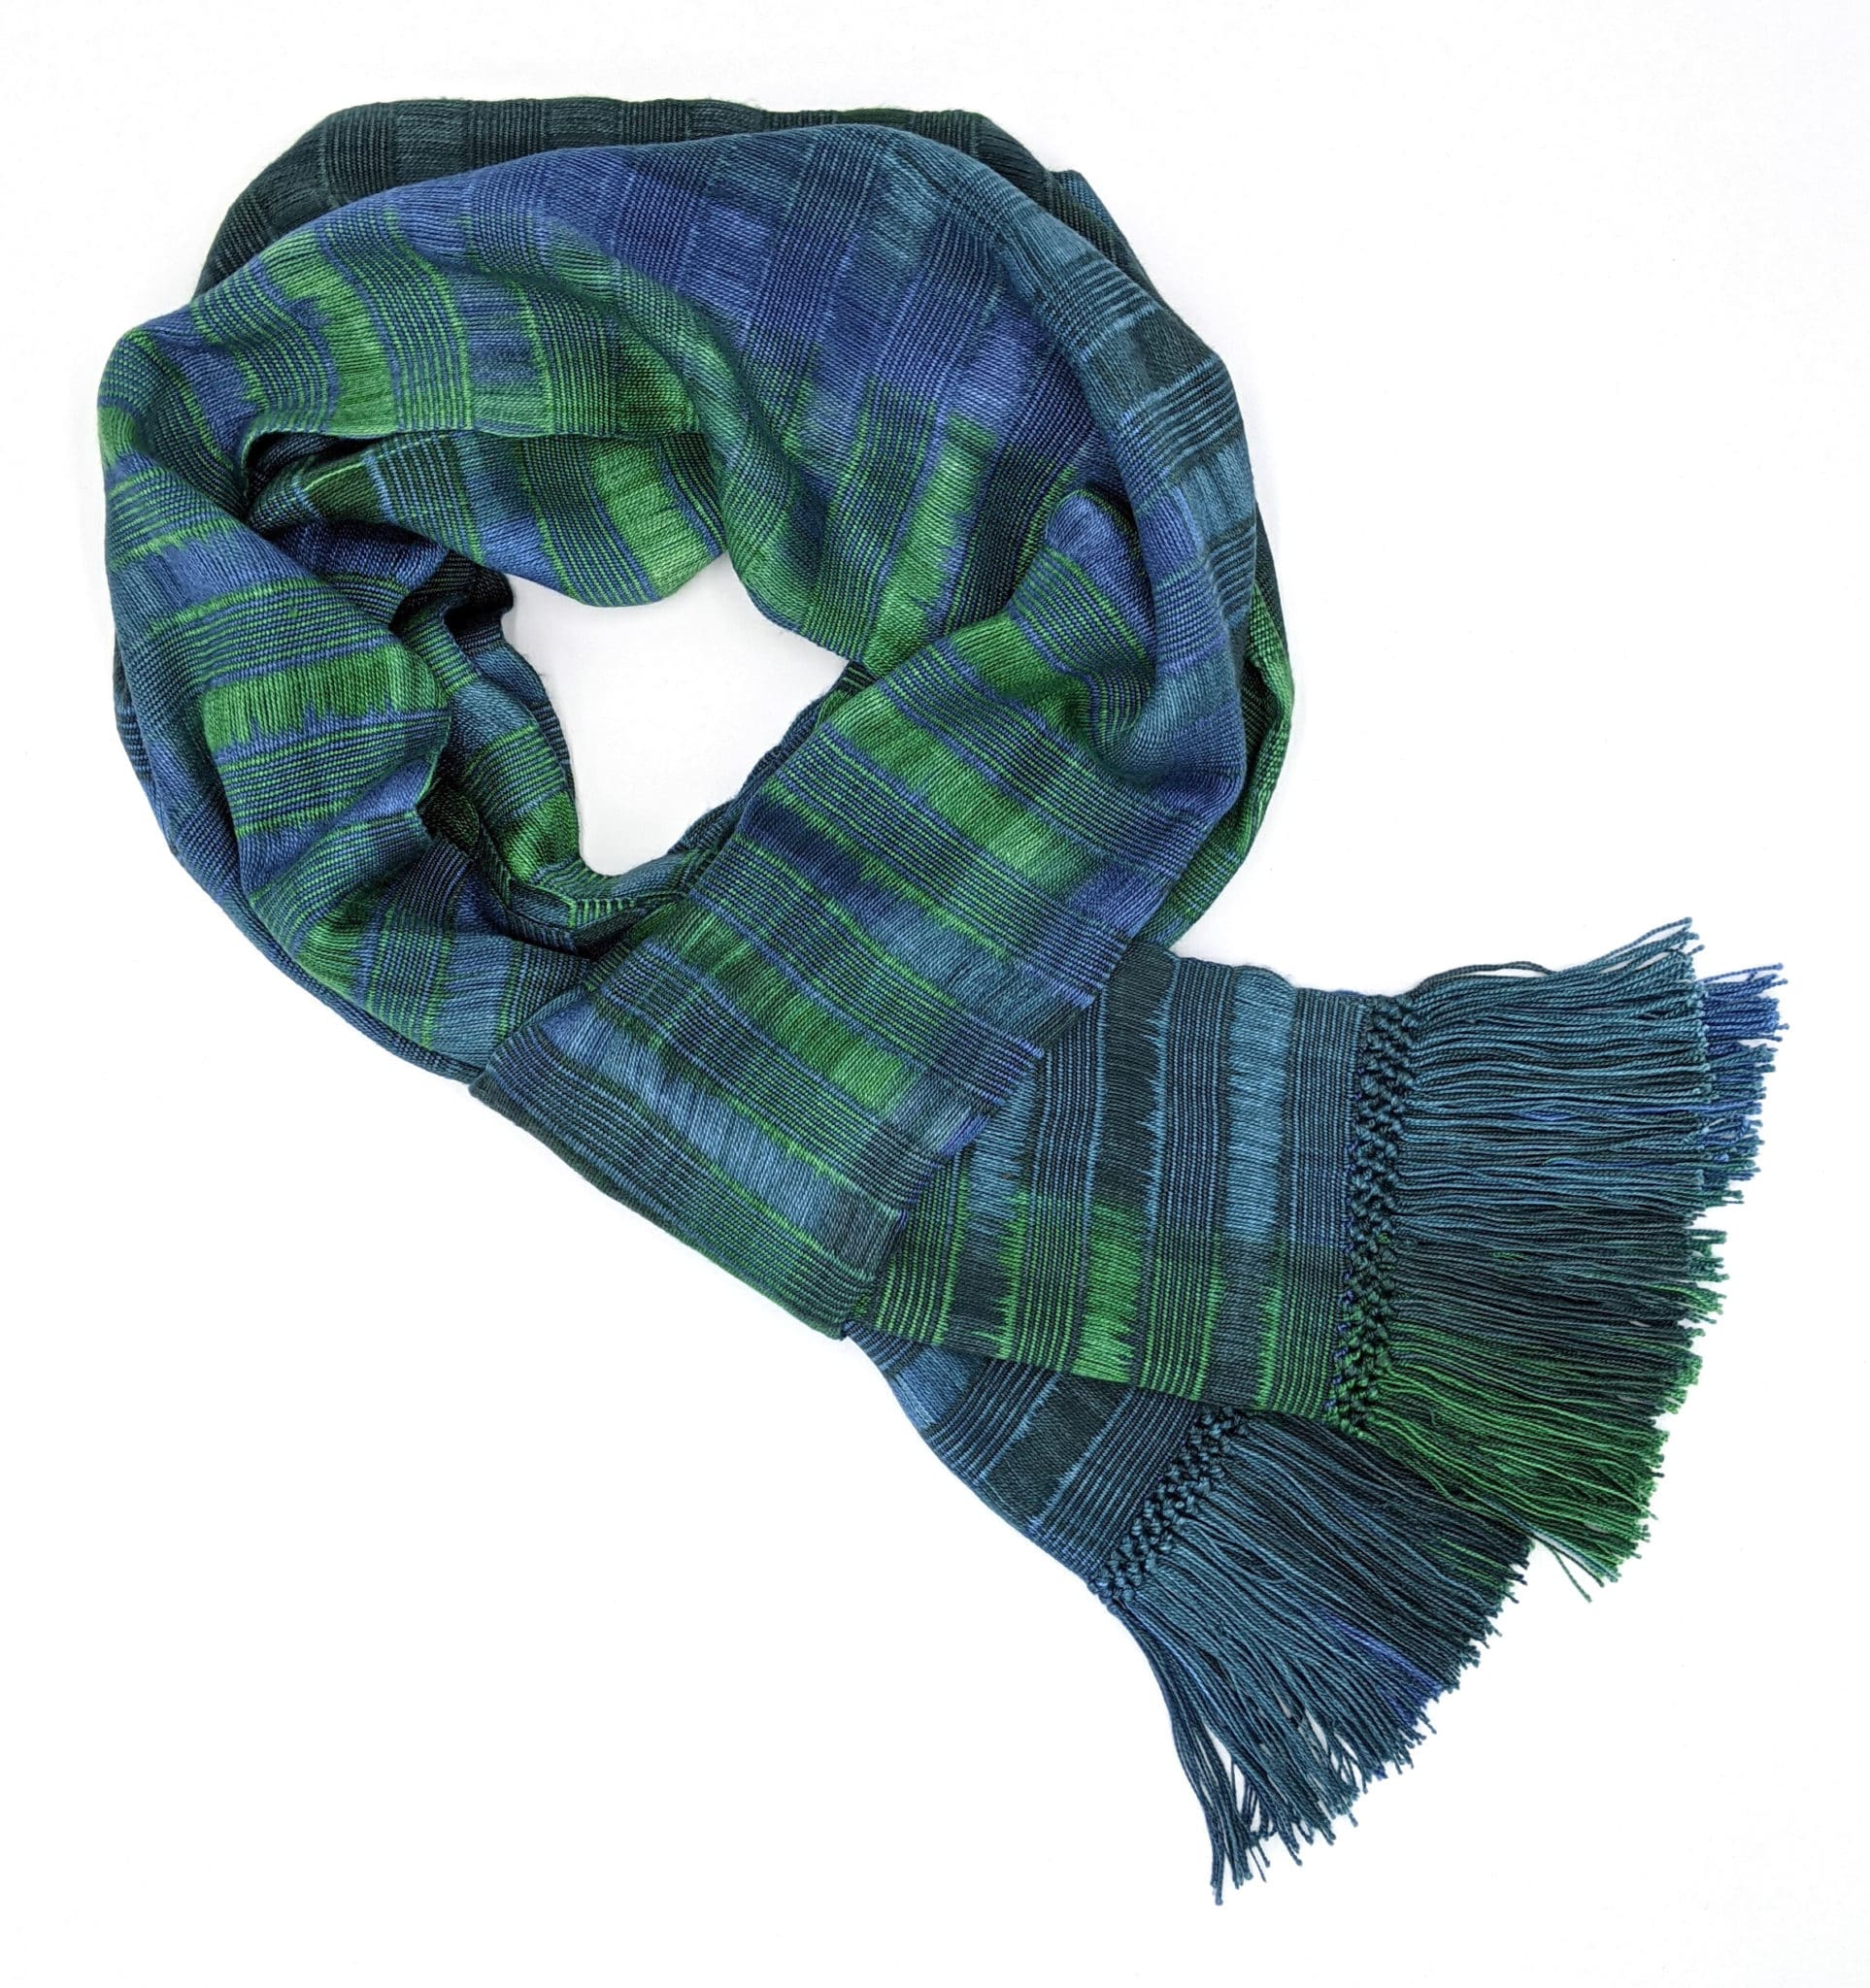 Emerald and Sapphire (Green and Blue) - Lightweight Bamboo Open-Weave Handwoven Scarf 8 x 68